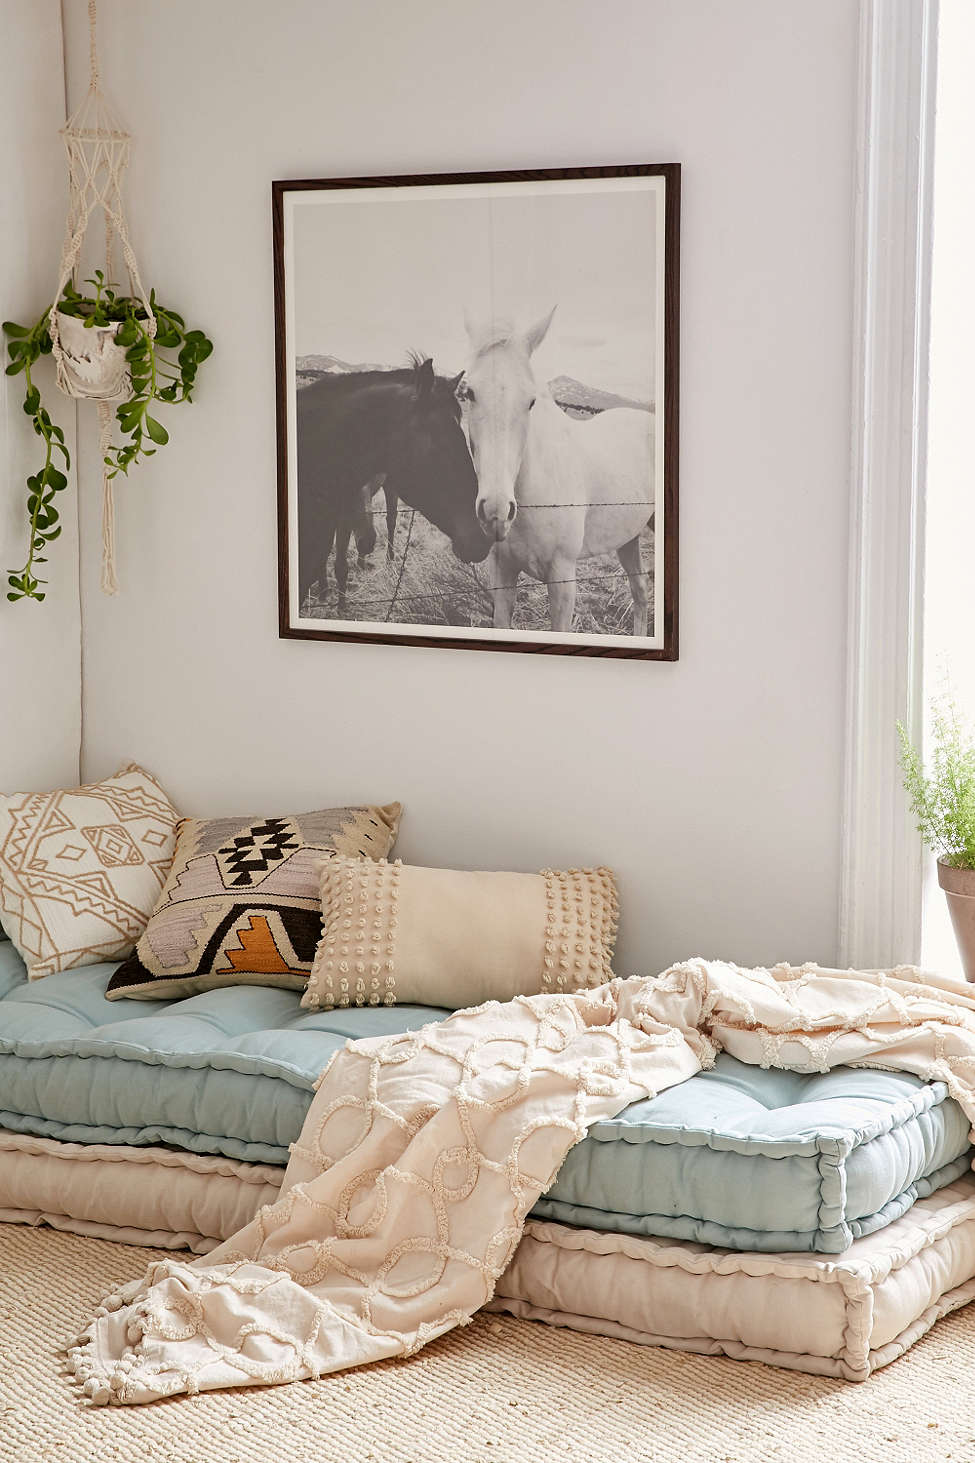 selinesteba.com - Daybed_Urban outfitters_rohini daybed cushion.jpeg